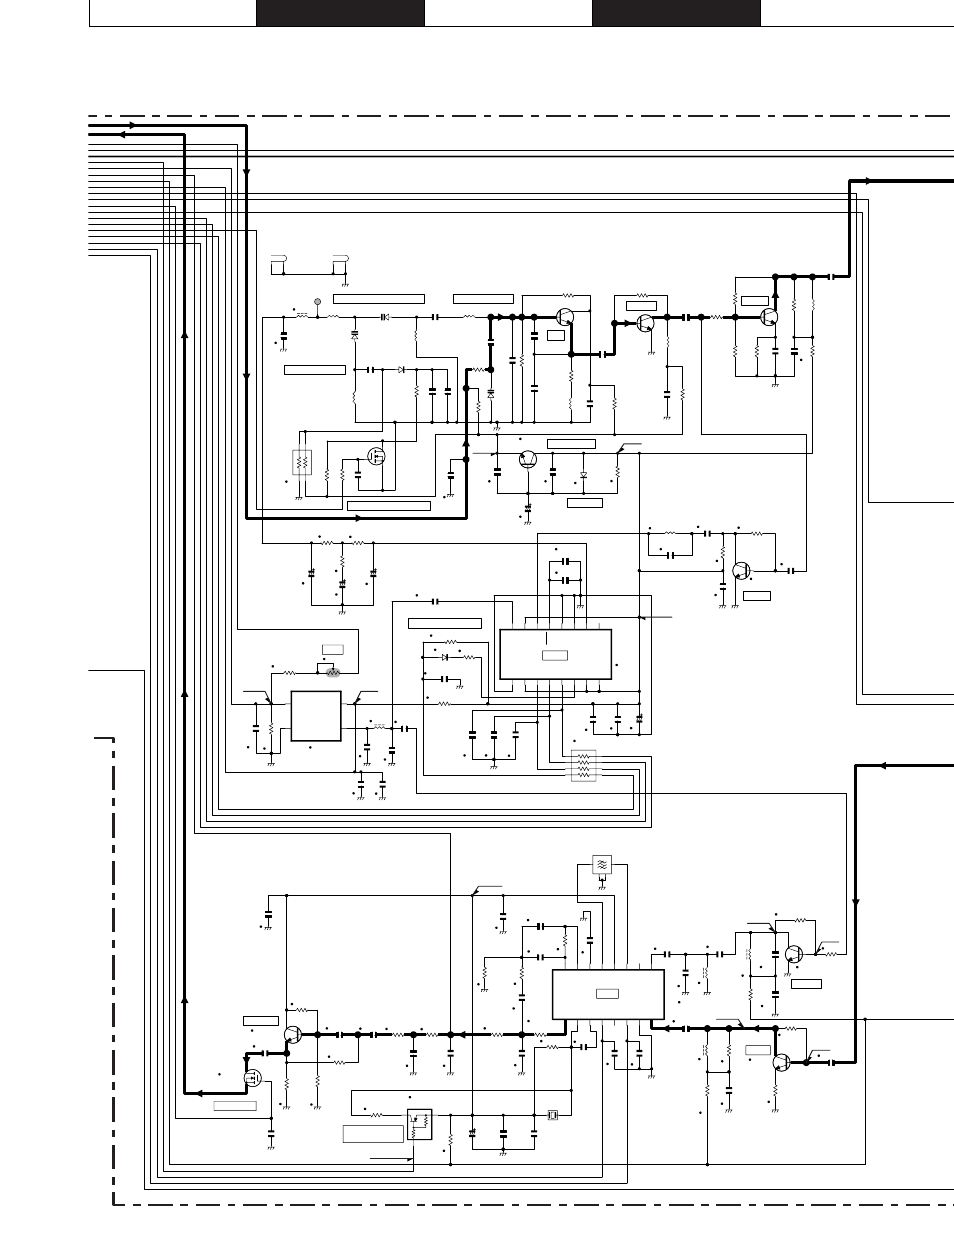 th k2e  k2et  schematic diagram  pq r s t